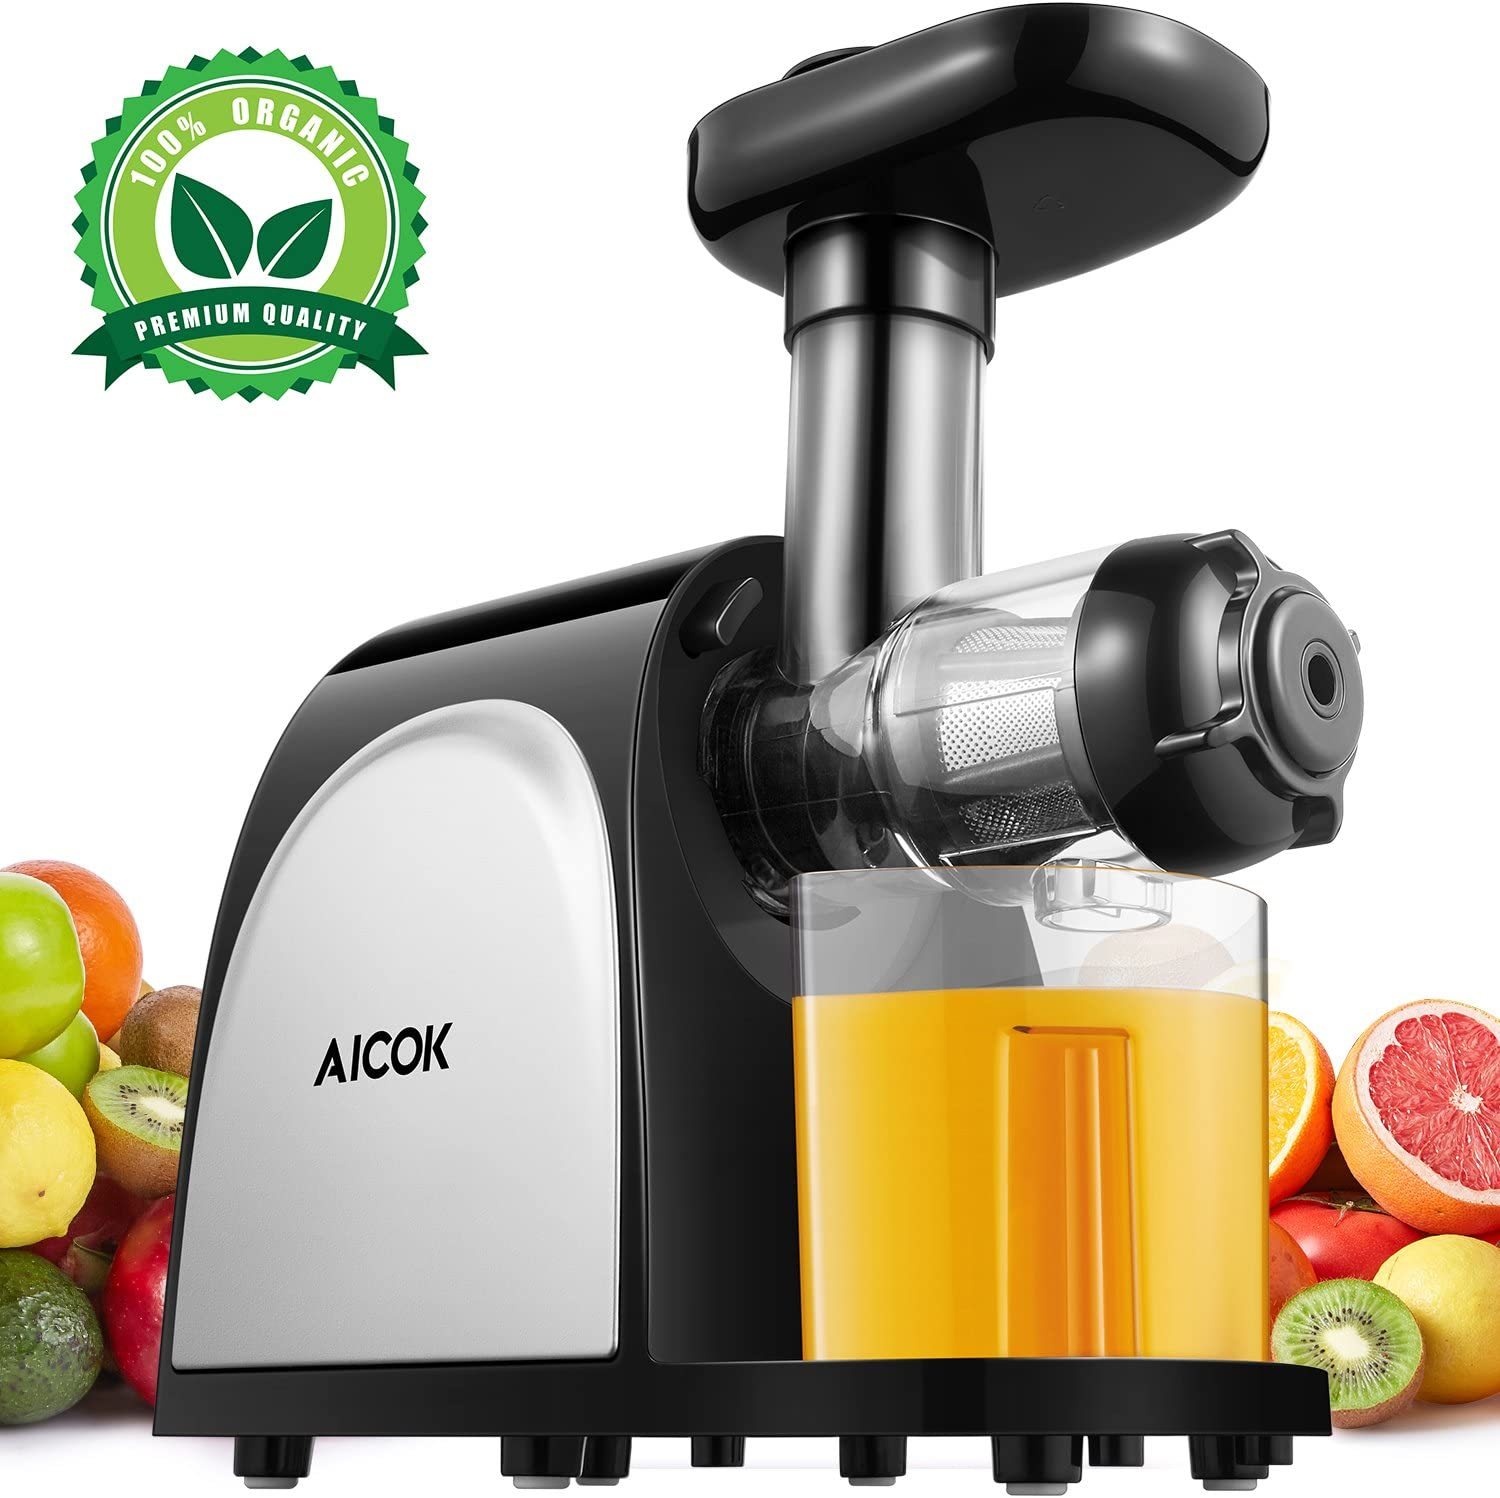 Aicok Juicer Slow Masticating Juice Extractor with Quiet Motor, Cold Press Machine Higher Juicer Yield and Drier Pulp with Reverse Function for